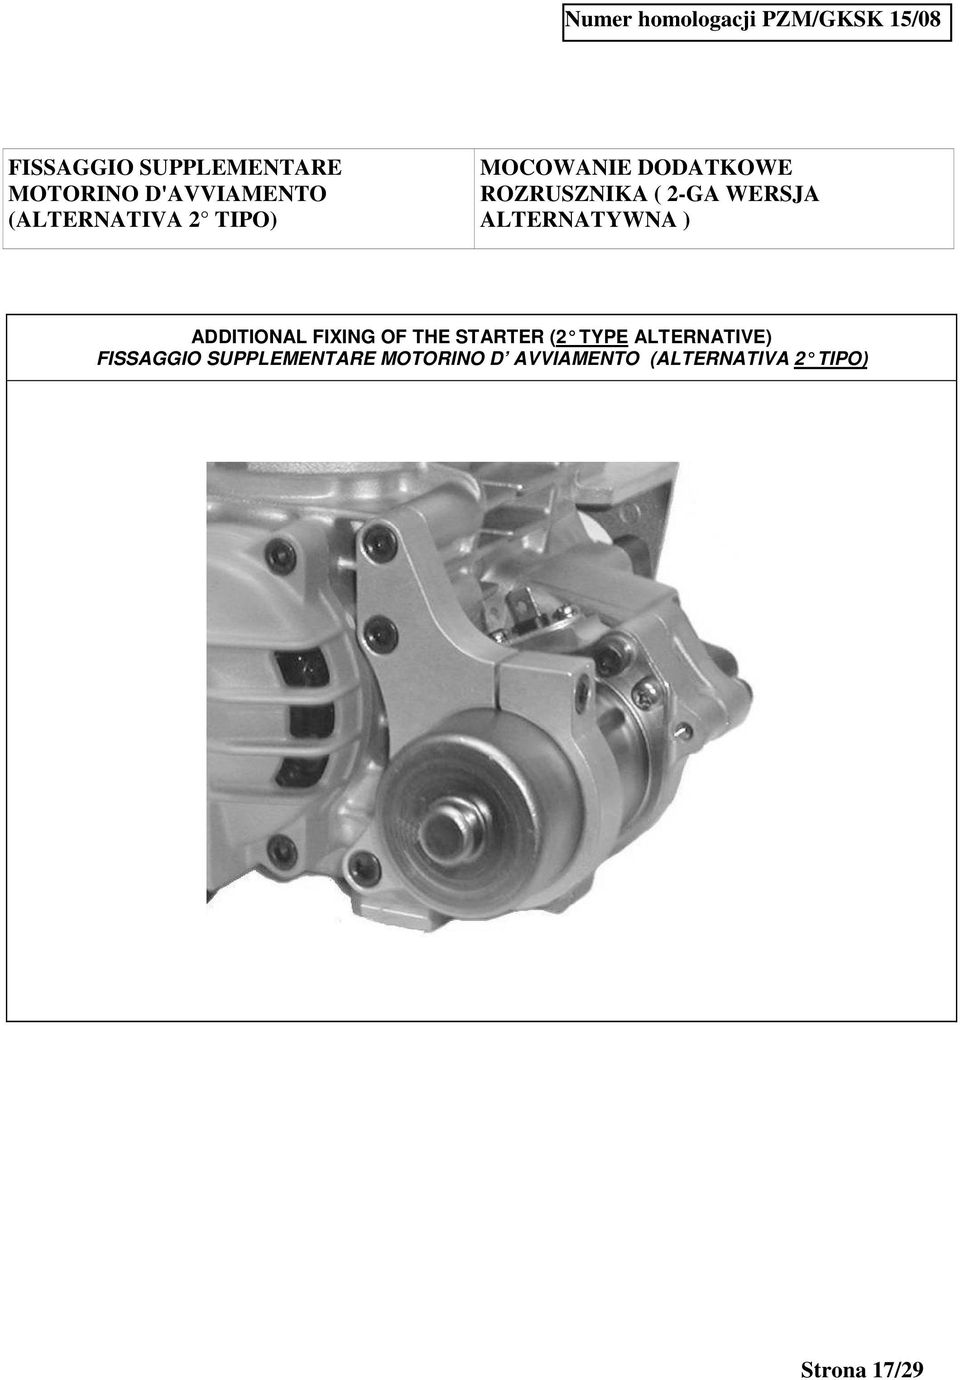 ) ADDITIONAL FIXING OF THE STARTER (2 TYPE ALTERNATIVE) FISSAGGIO